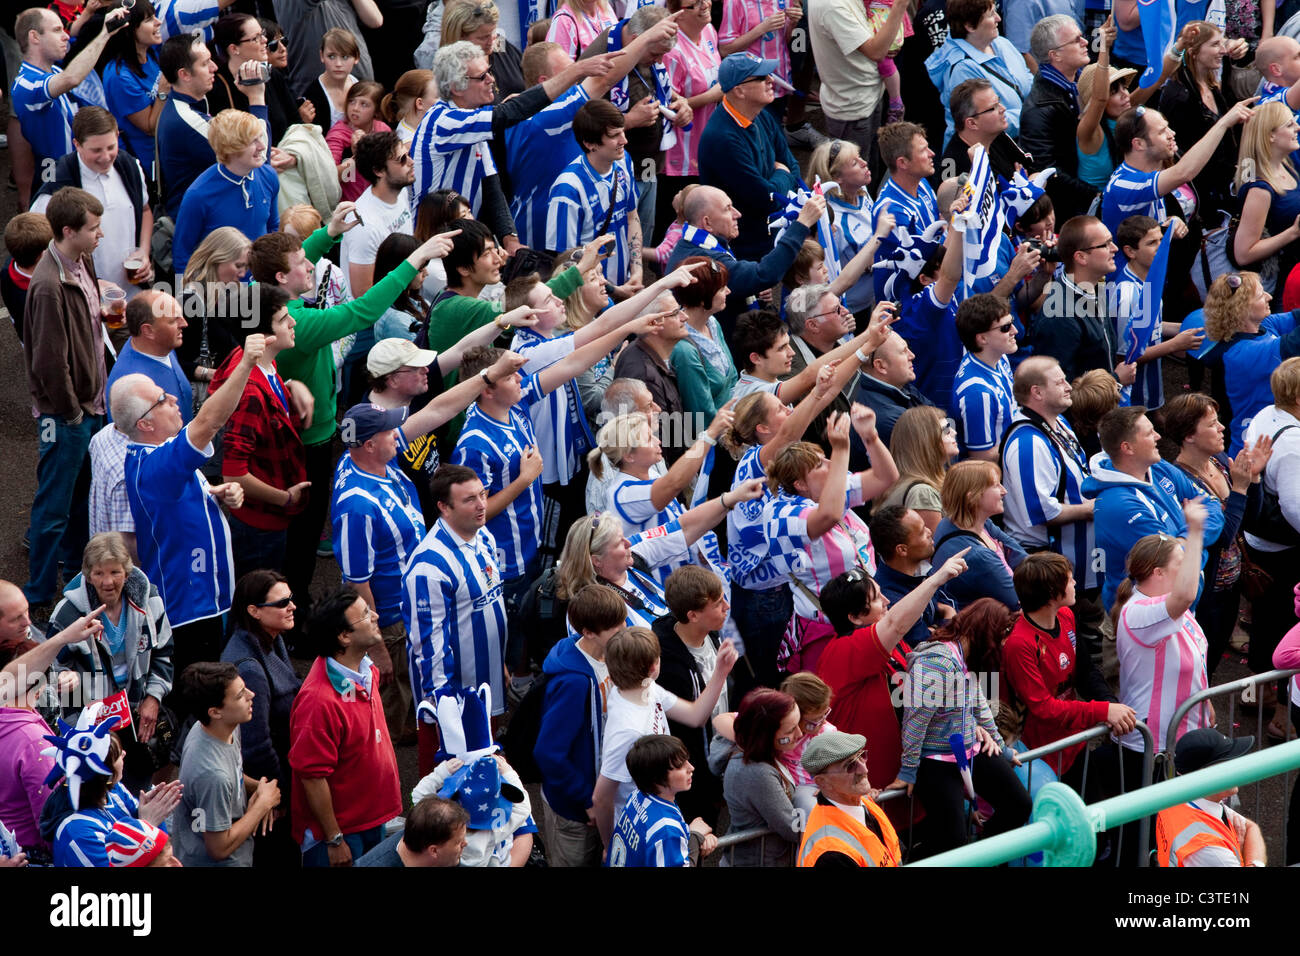 Brighton and Hove Albion Football Supporters cheer the team during the clubs victory parade along Brighton seafront. - Stock Image